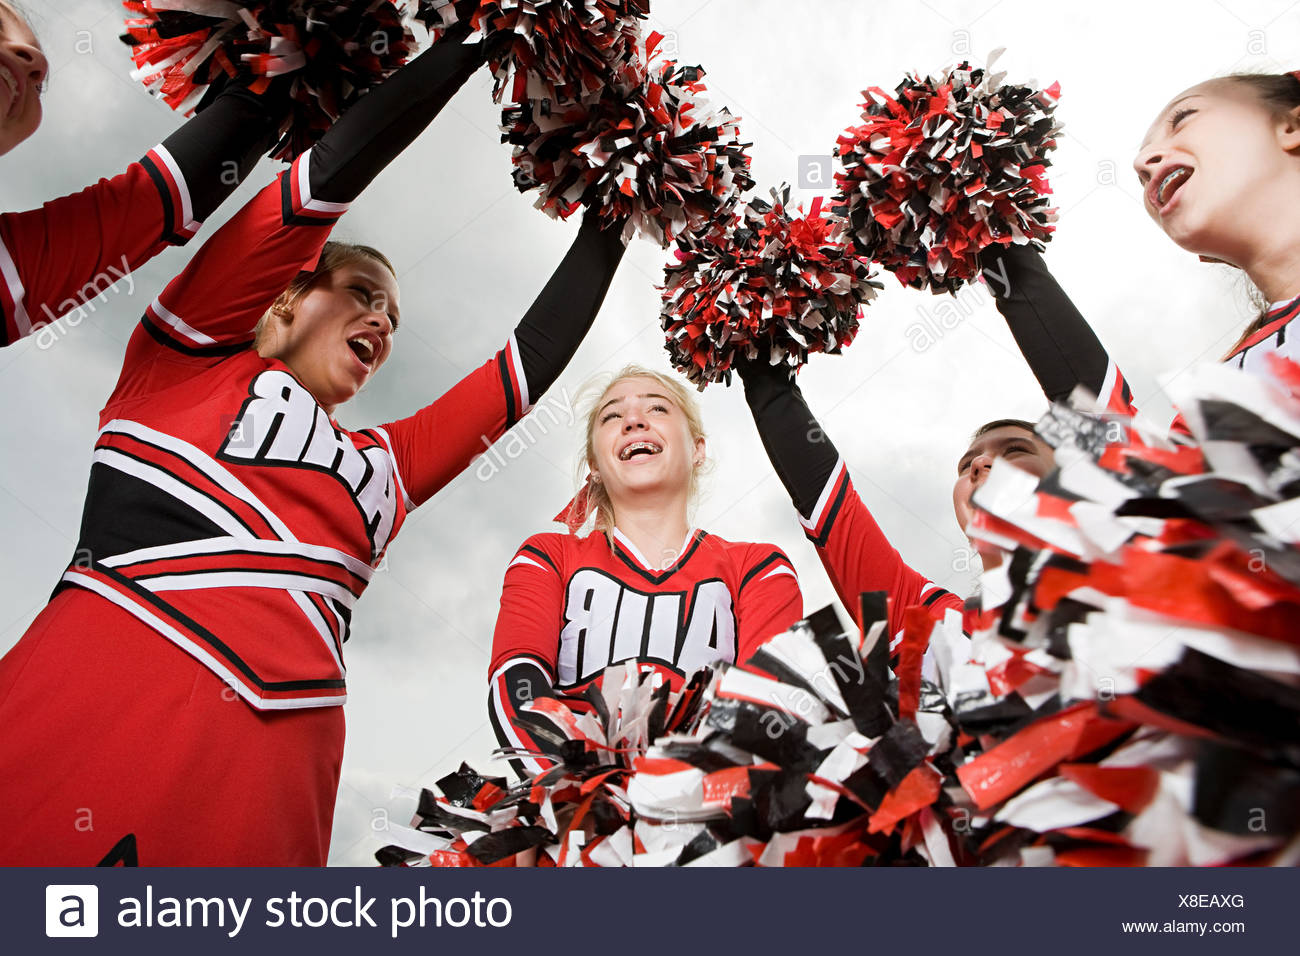 Cheerleaders with pom poms - Stock Image